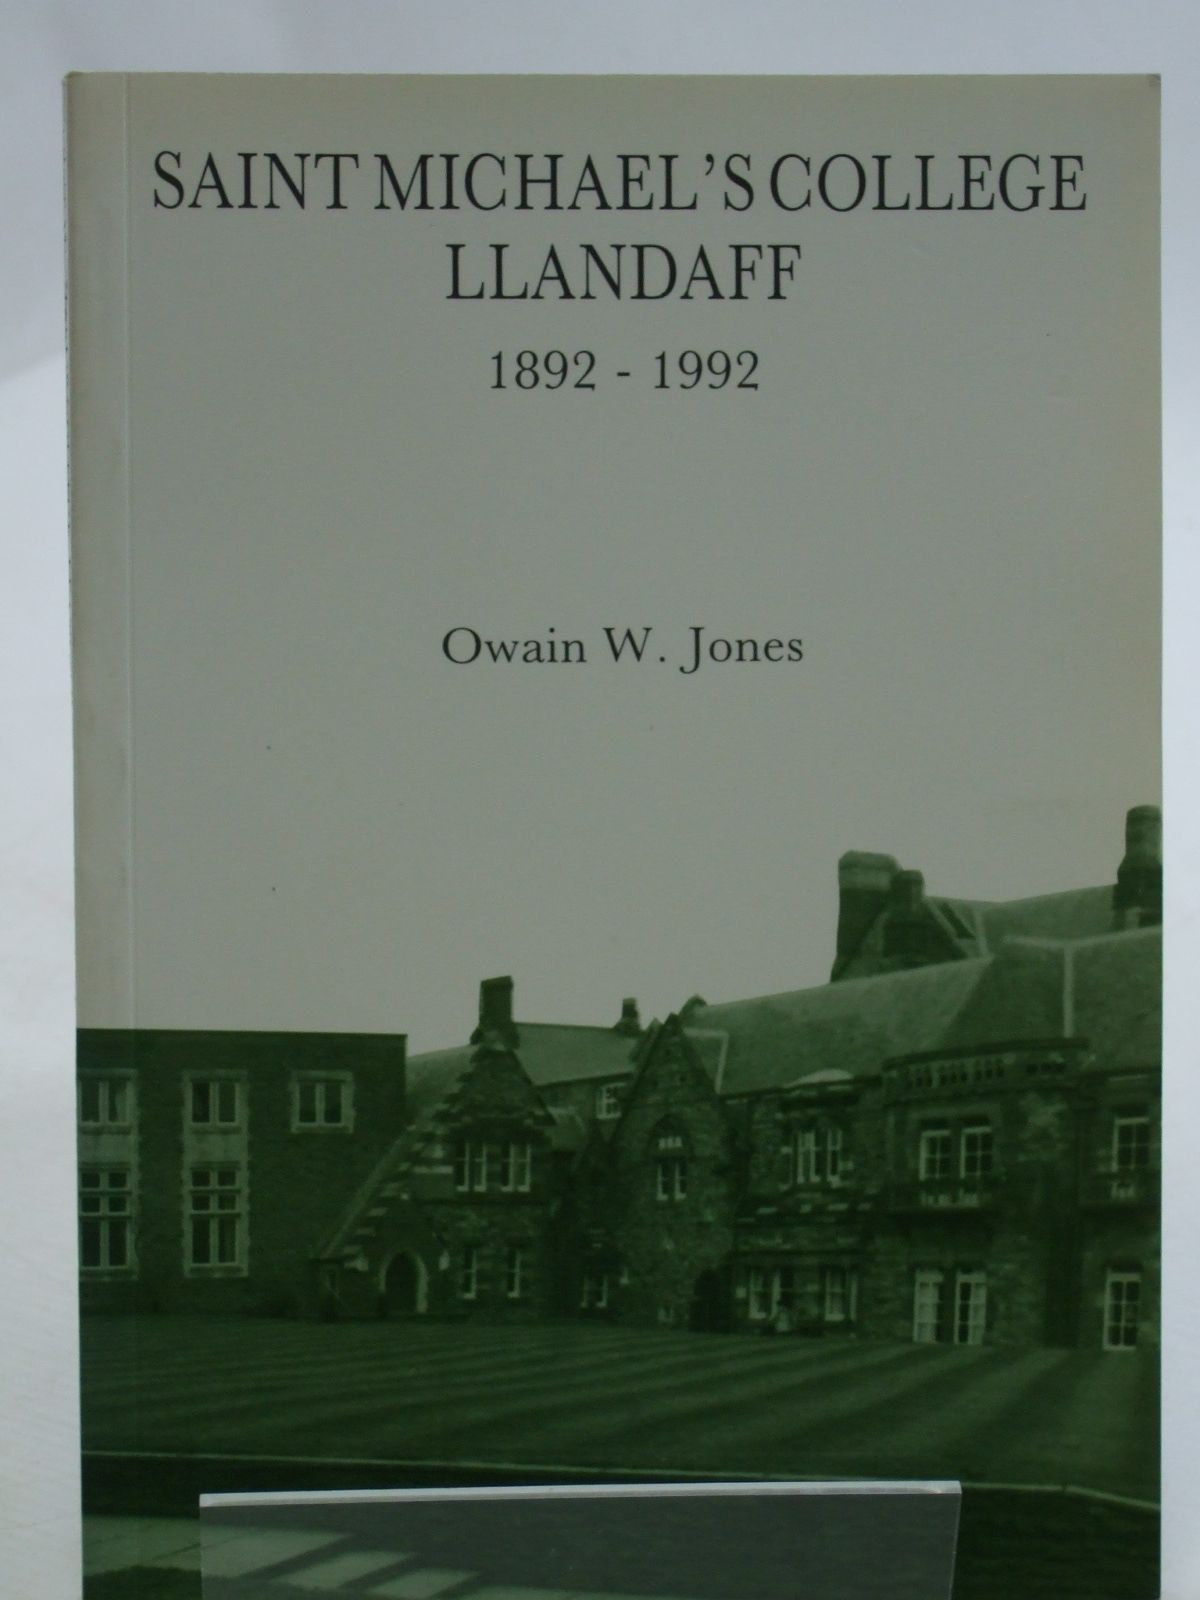 Photo of SAINT MICHAEL'S COLLEGE LLANDAFF 1892 - 1992 written by Jones, Owain W. published by J.D. Lewis & Sons (STOCK CODE: 1604373)  for sale by Stella & Rose's Books